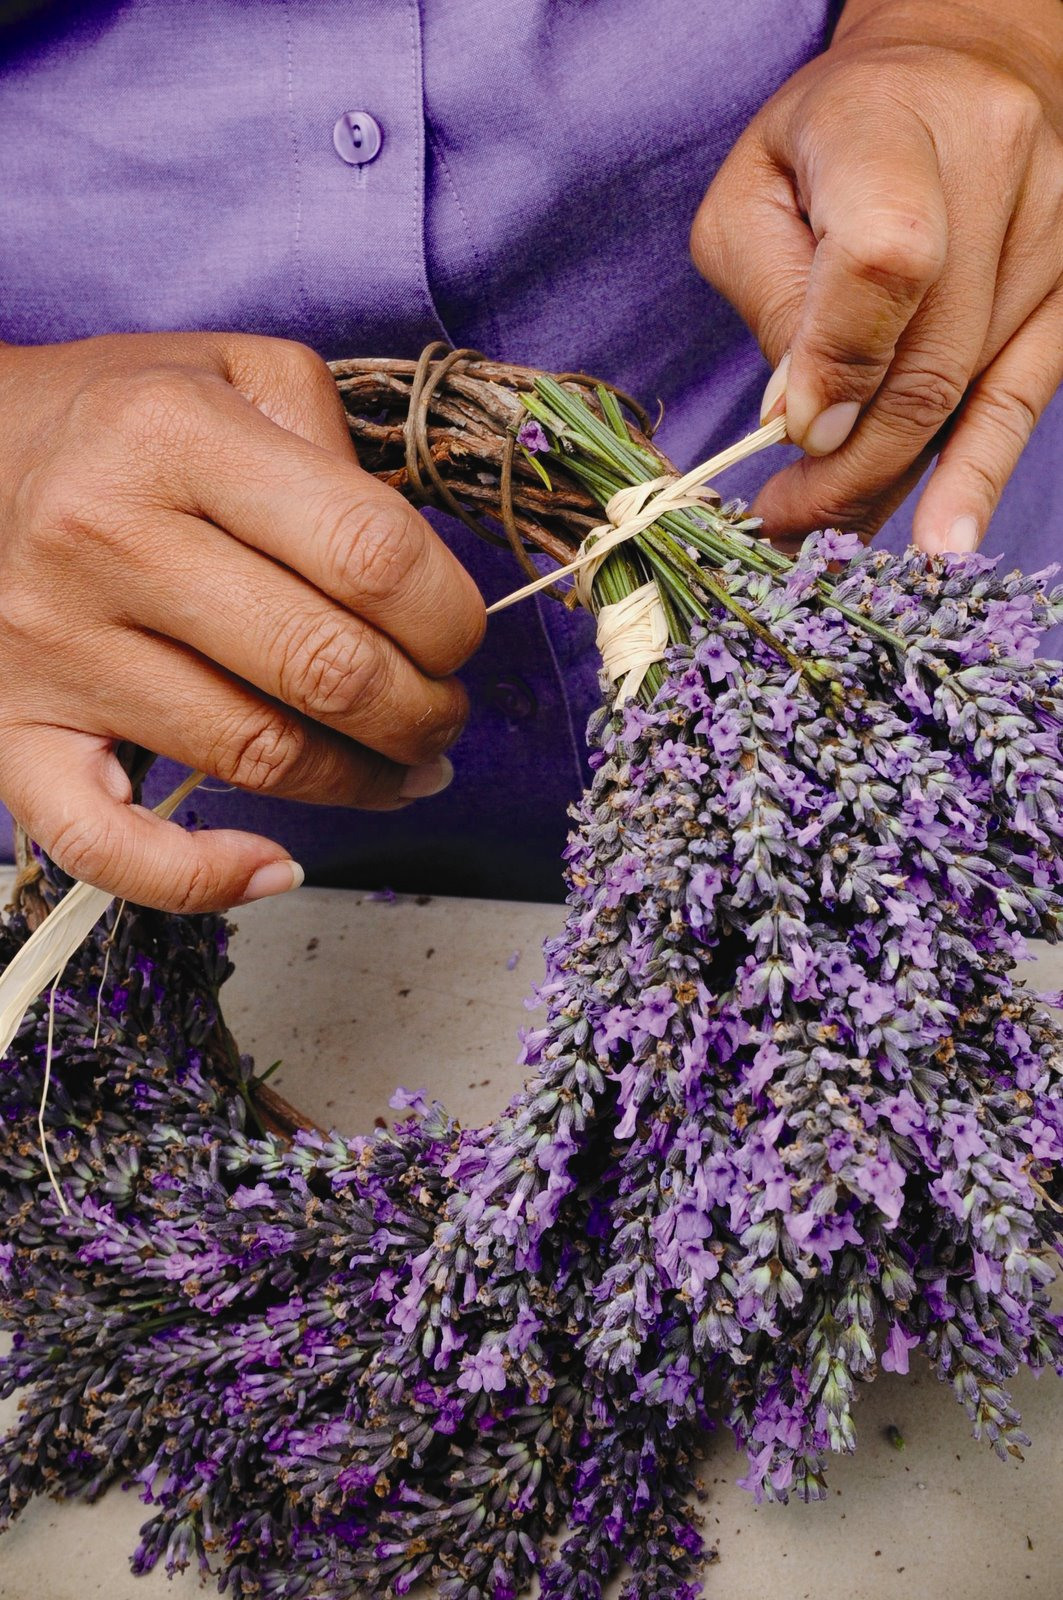 Photo: Step two of the lavender wreath craft project. PHOTO CREDIT: Ali'i Kula Lavender/The Maui Book of Lavender.